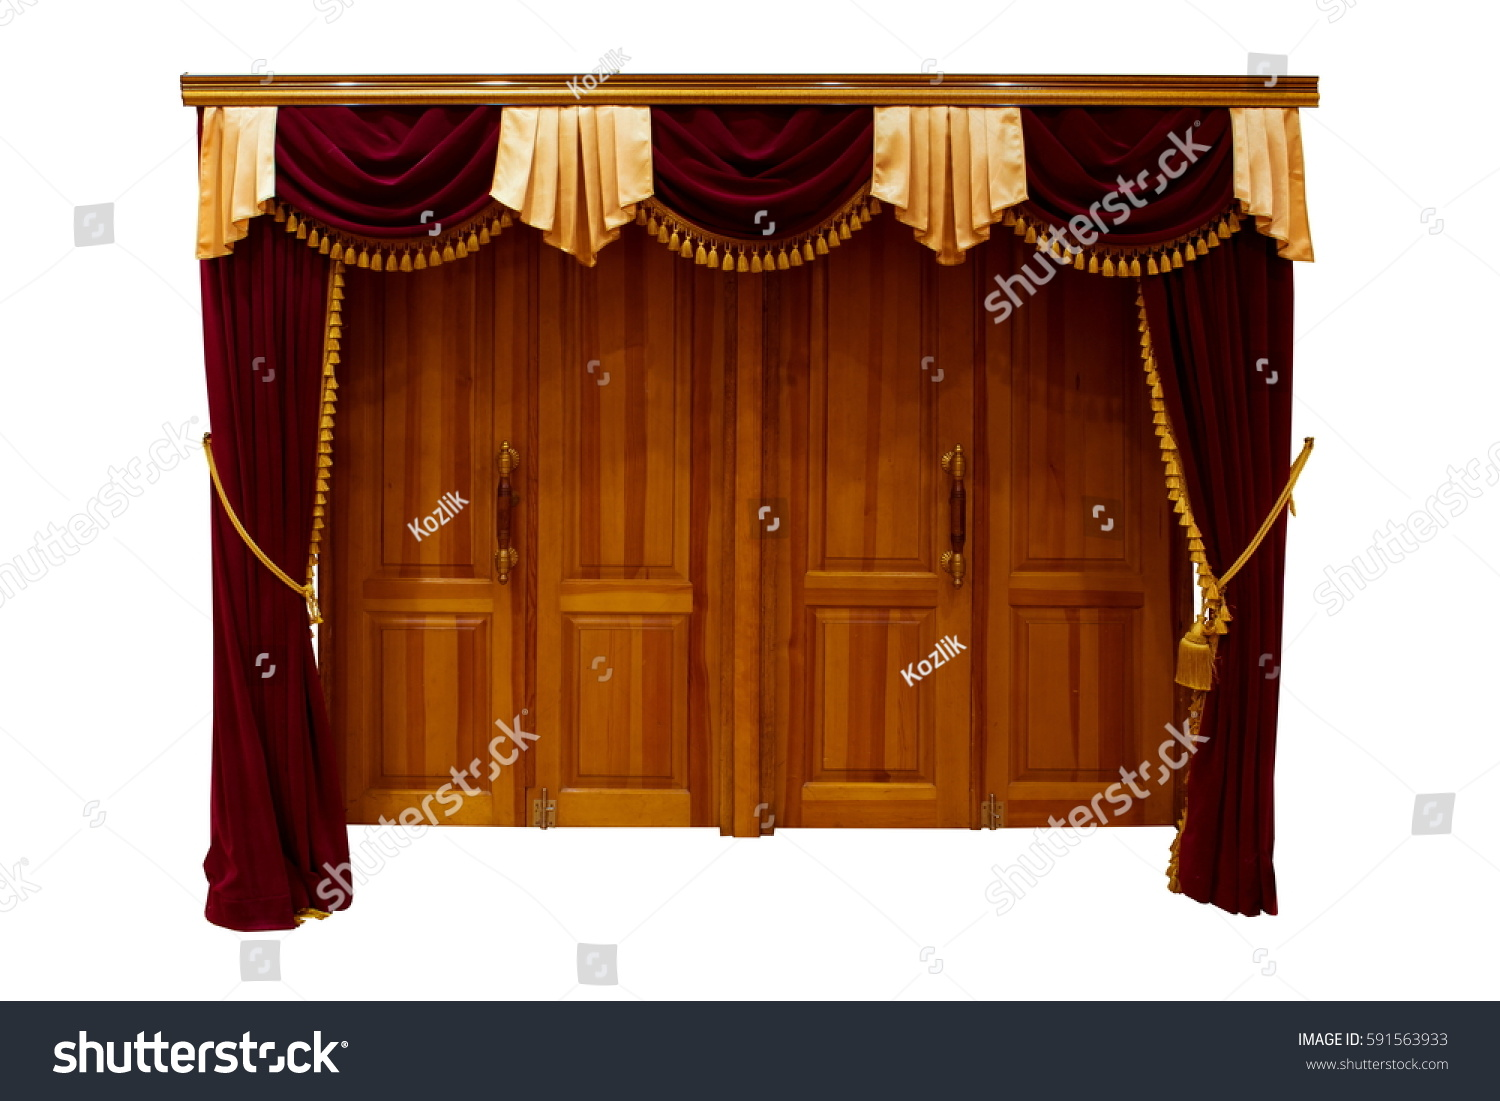 wooden doors and red velvet curtain